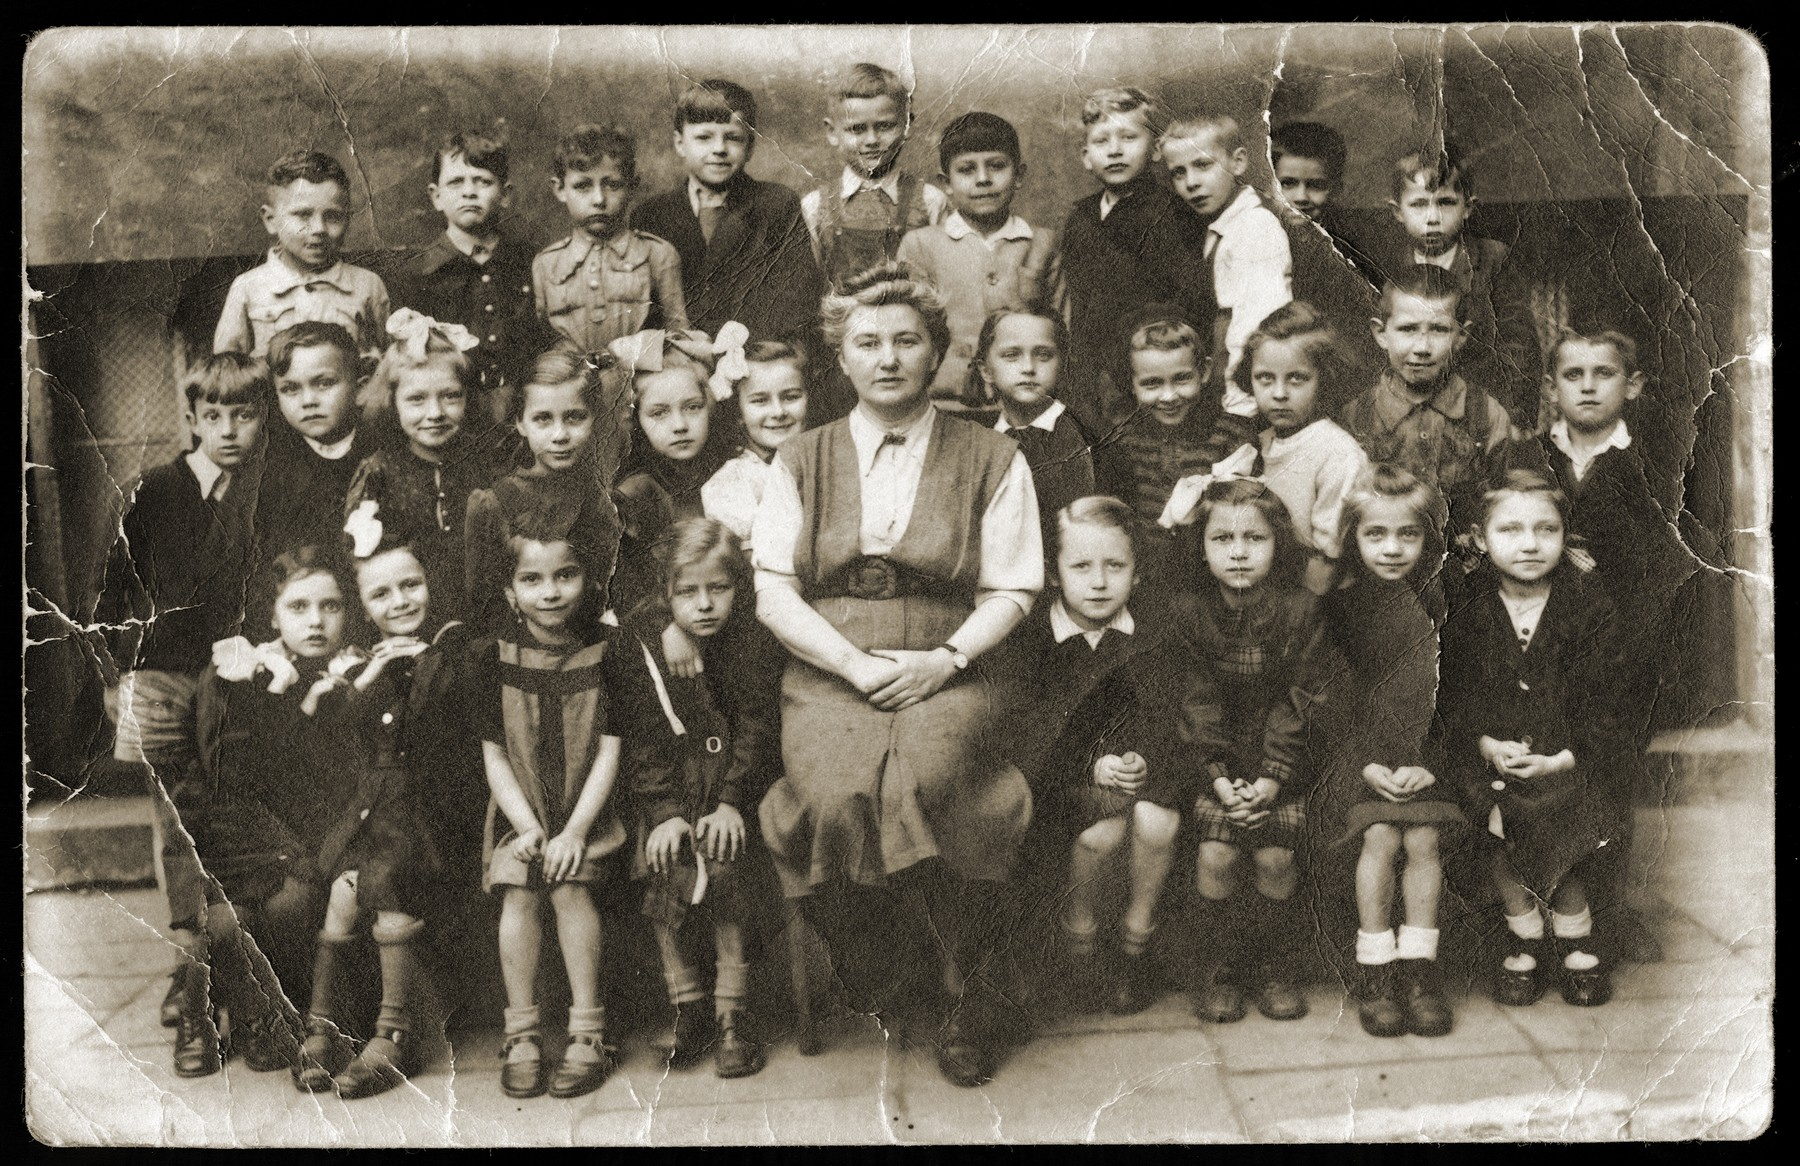 Group portrait of the pupils and teacher of a first grade class in Lodz.    Among those pictured is Anna Strzelczyk (front row, left).  The two girls beside her are also Jewish children who were hidden during the war.